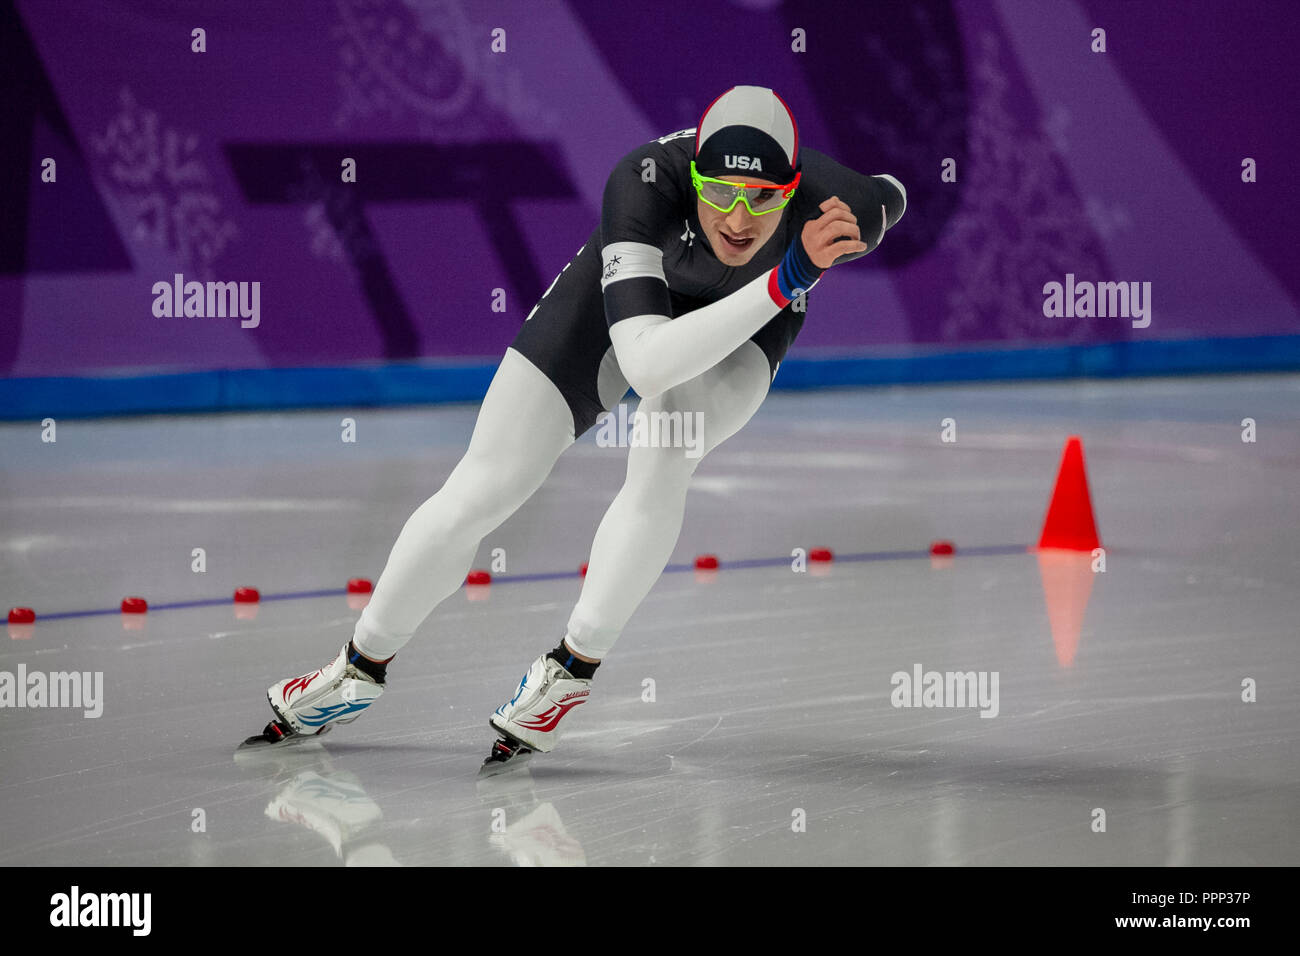 Emery Lehman (USA) competing in the men's  5000m speed skating at the Olympic Winter Games PyeongChang 2018 - Stock Image